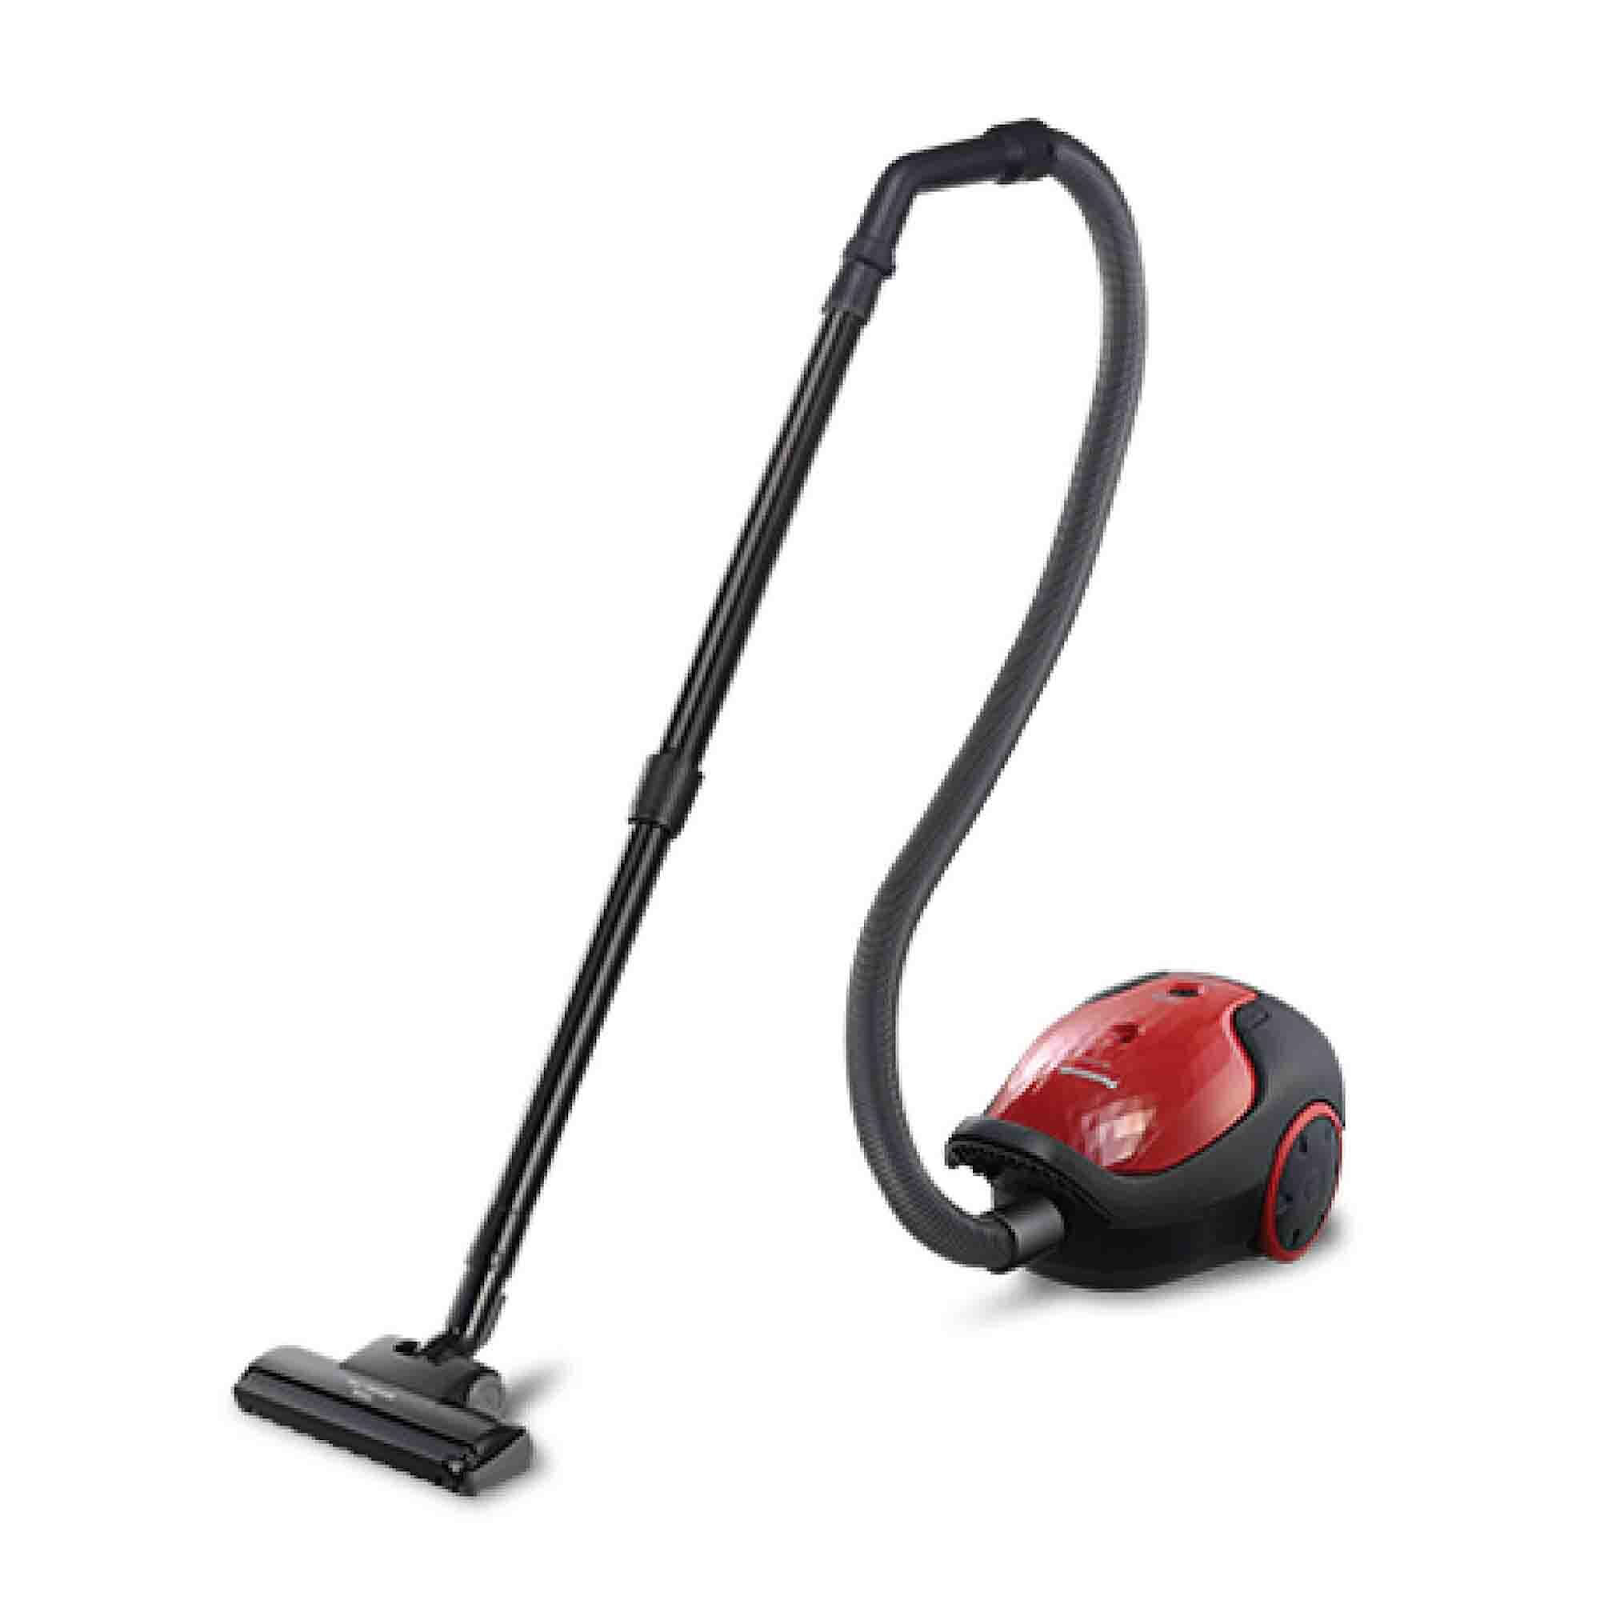 A high-power, lightweight vacuum cleaner that is suitable for domestic use Source; Shopee.com